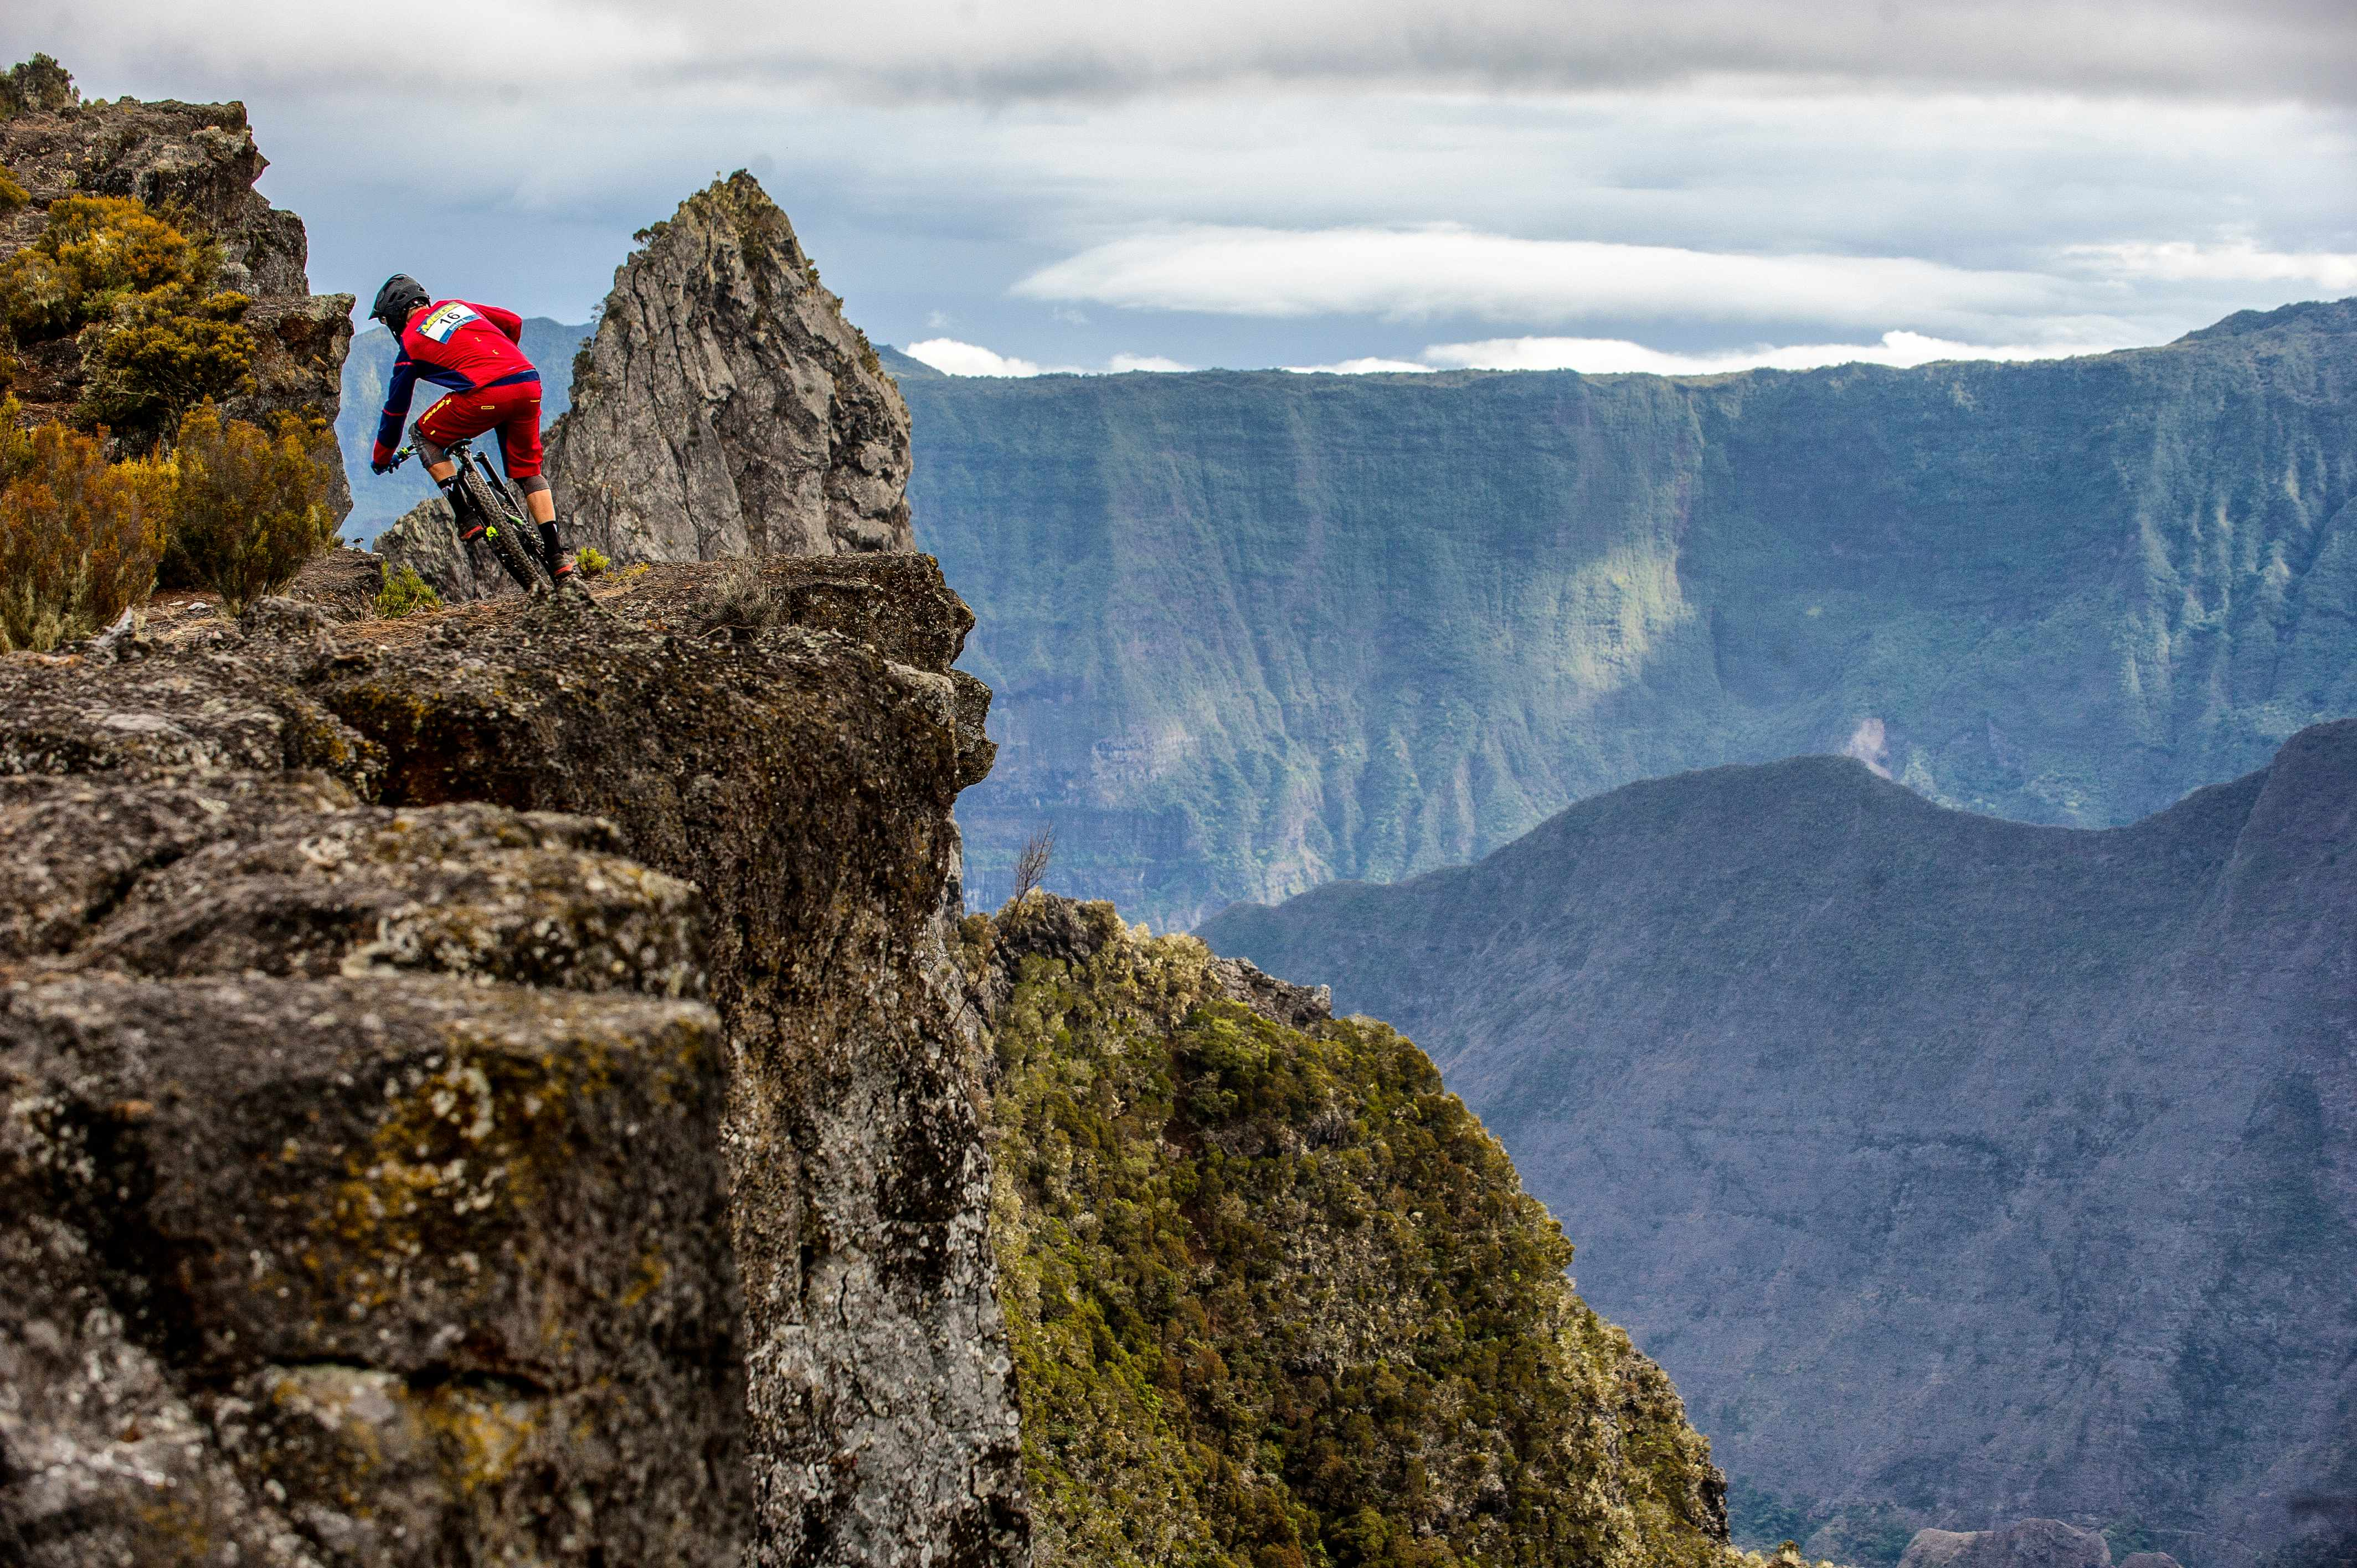 Riding on a cliff edge at Reunion Island